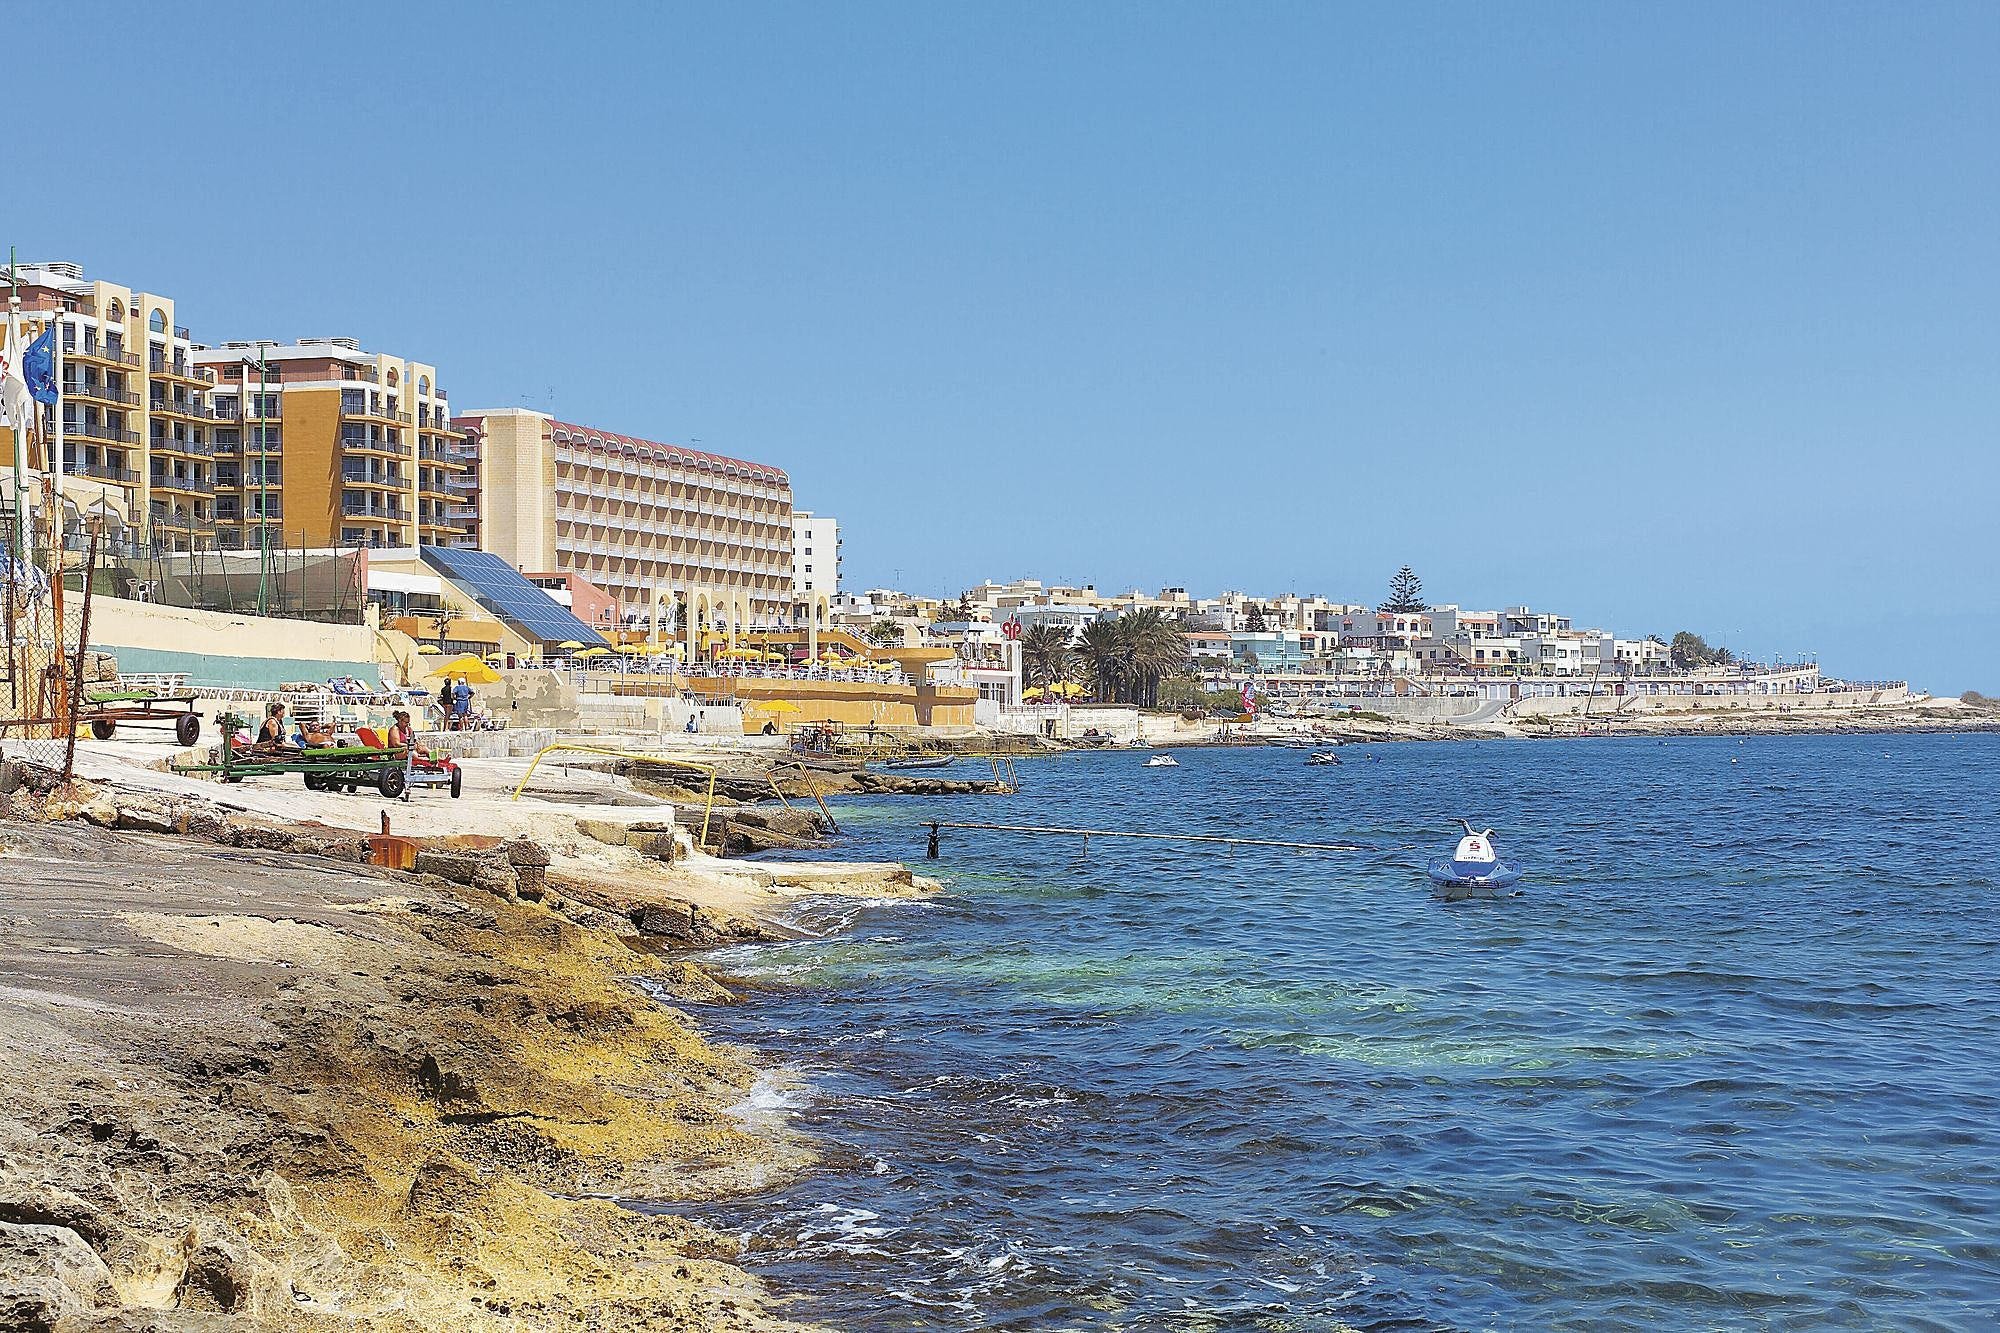 St Paul's Bay, Malta, bild 3 av 5